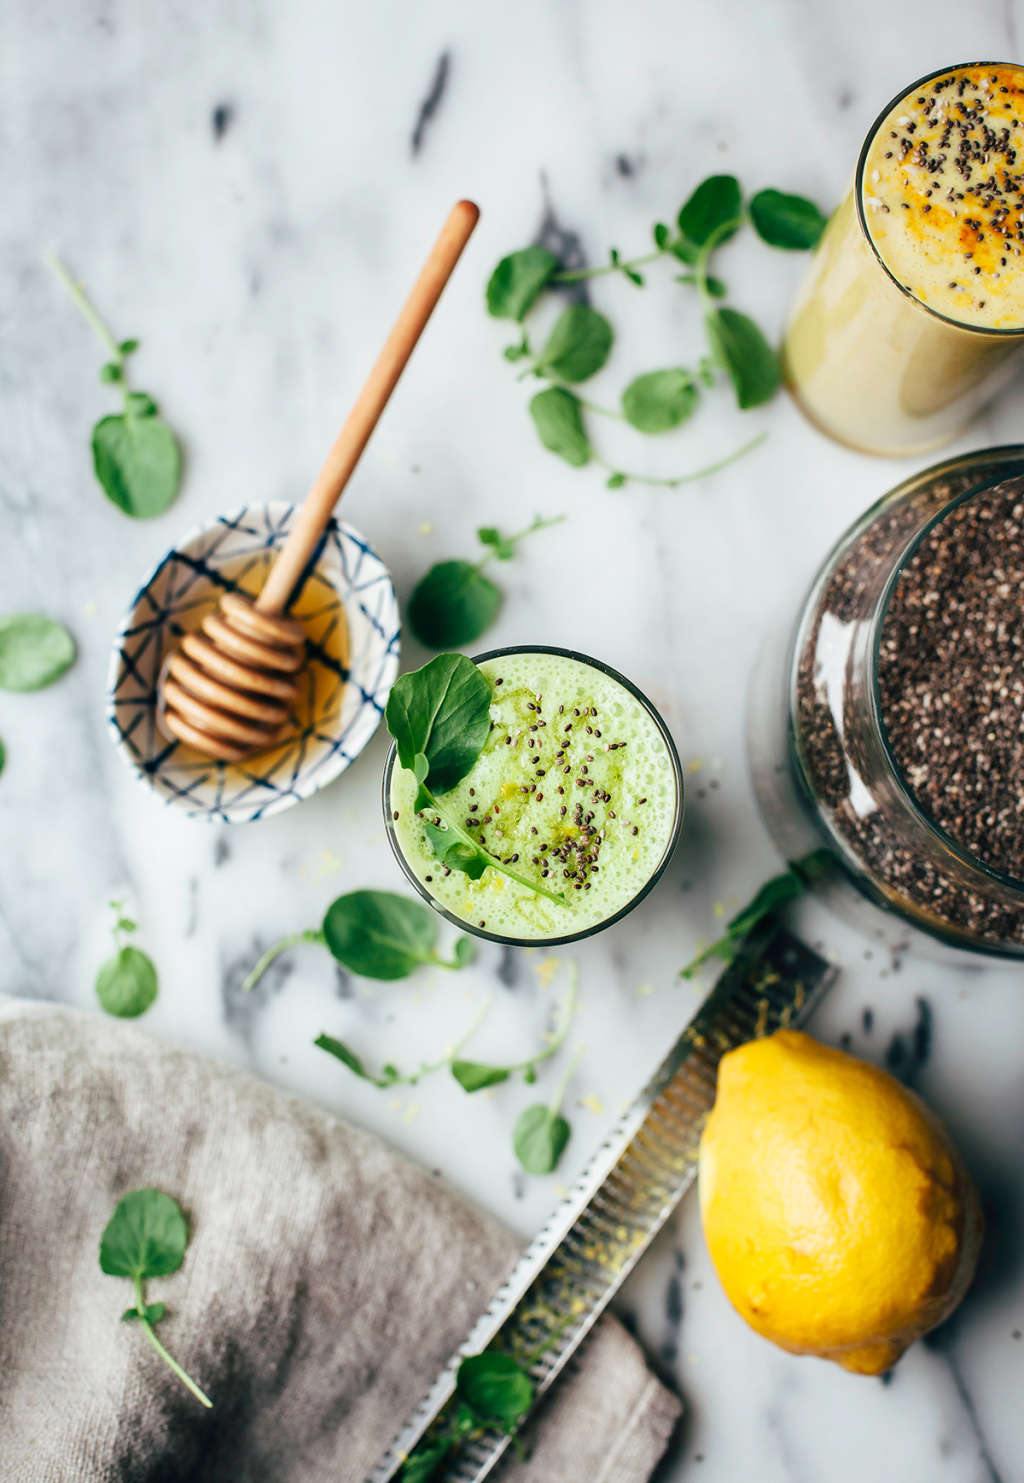 A Nutritionist's Advice for a Better Smoothie